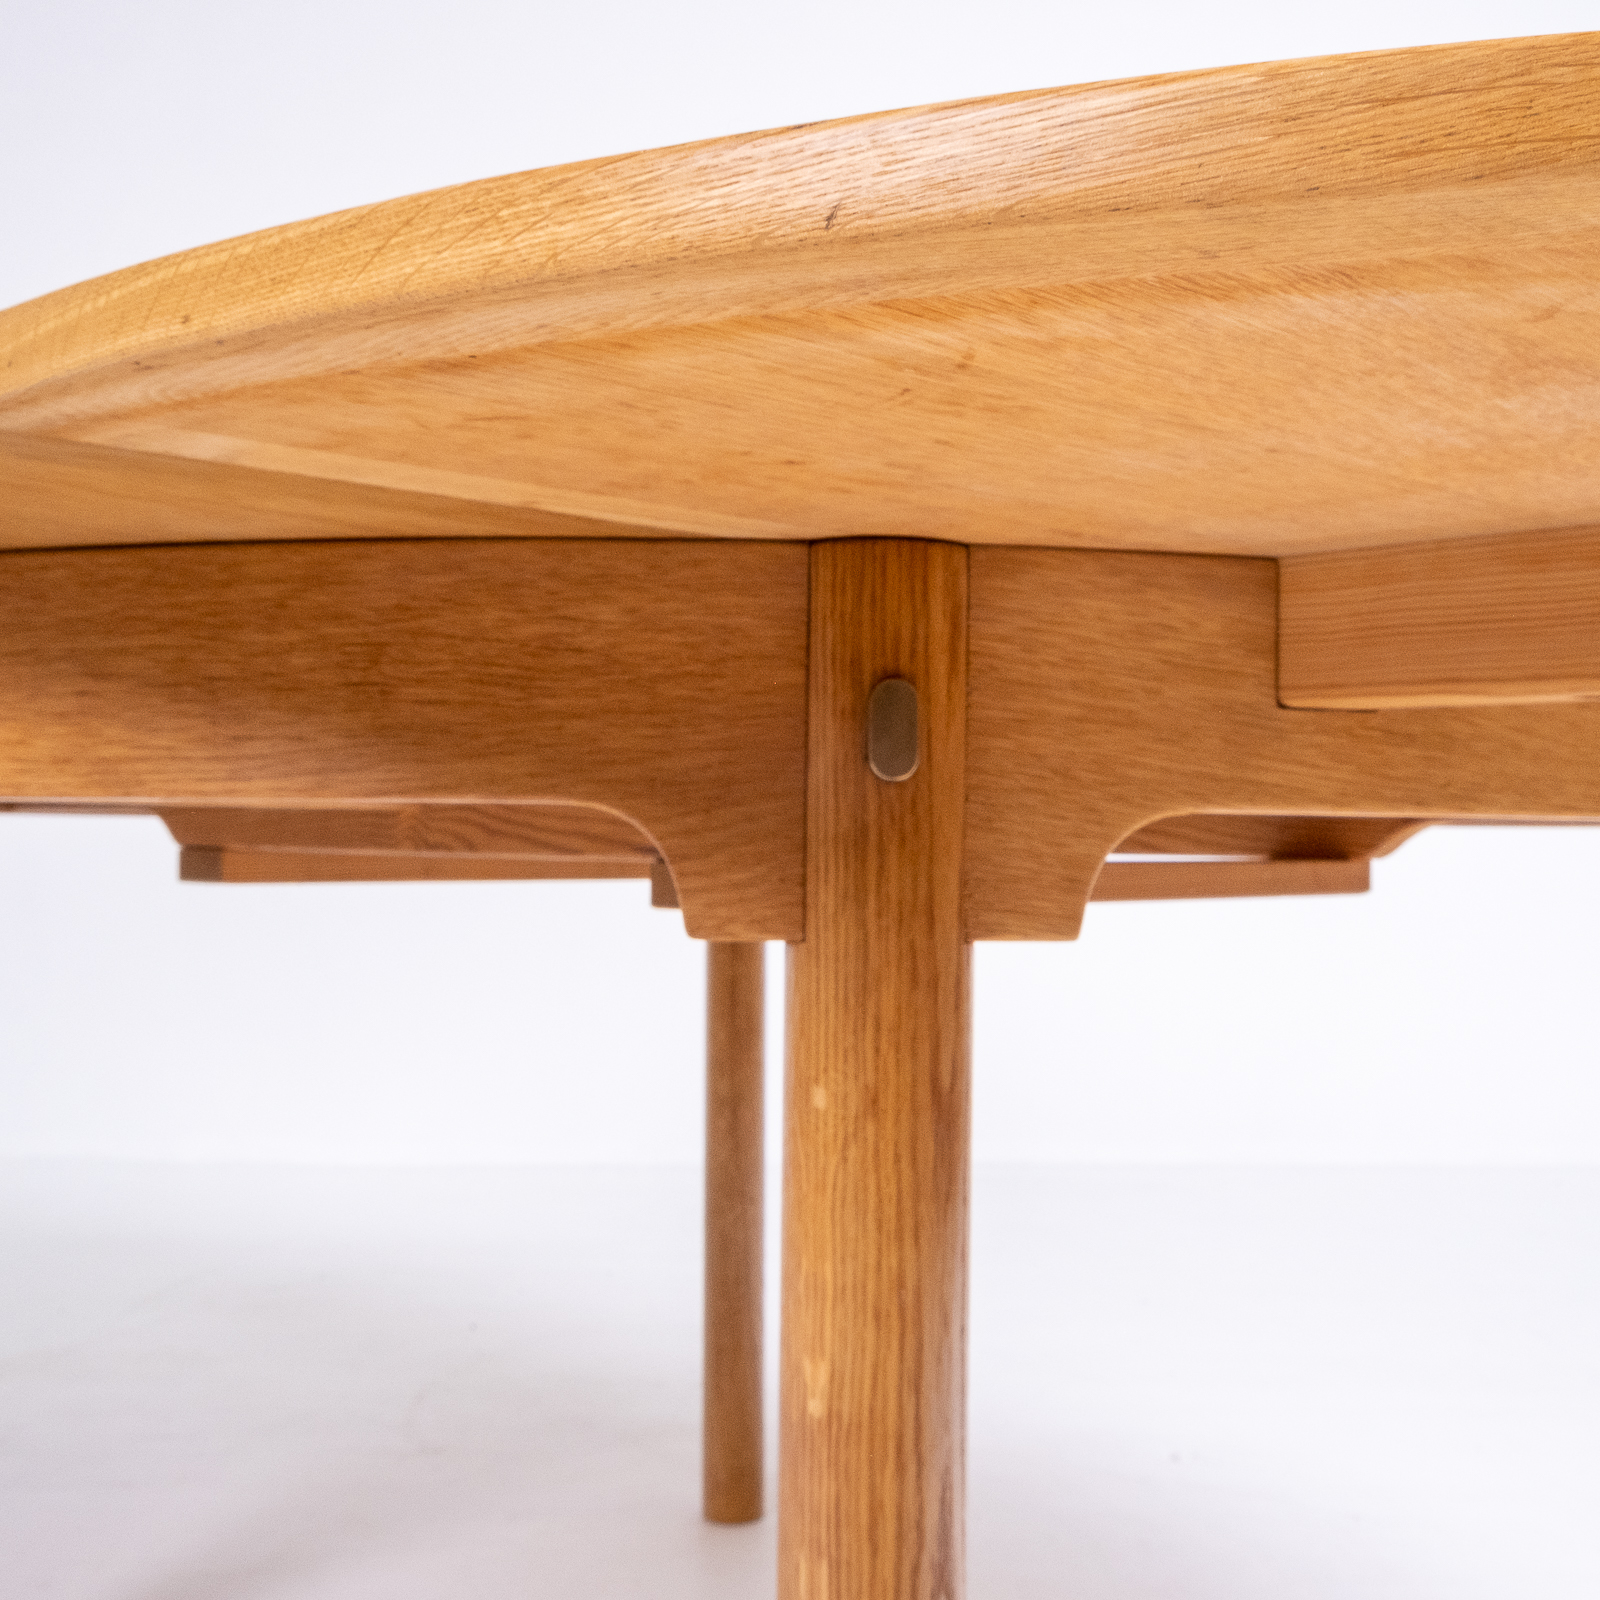 Round 140 Dining Table By Borge Mogensen For Karl Andersson & Söner In Oak With Butterfly Extensions, 1960s, Denmark83